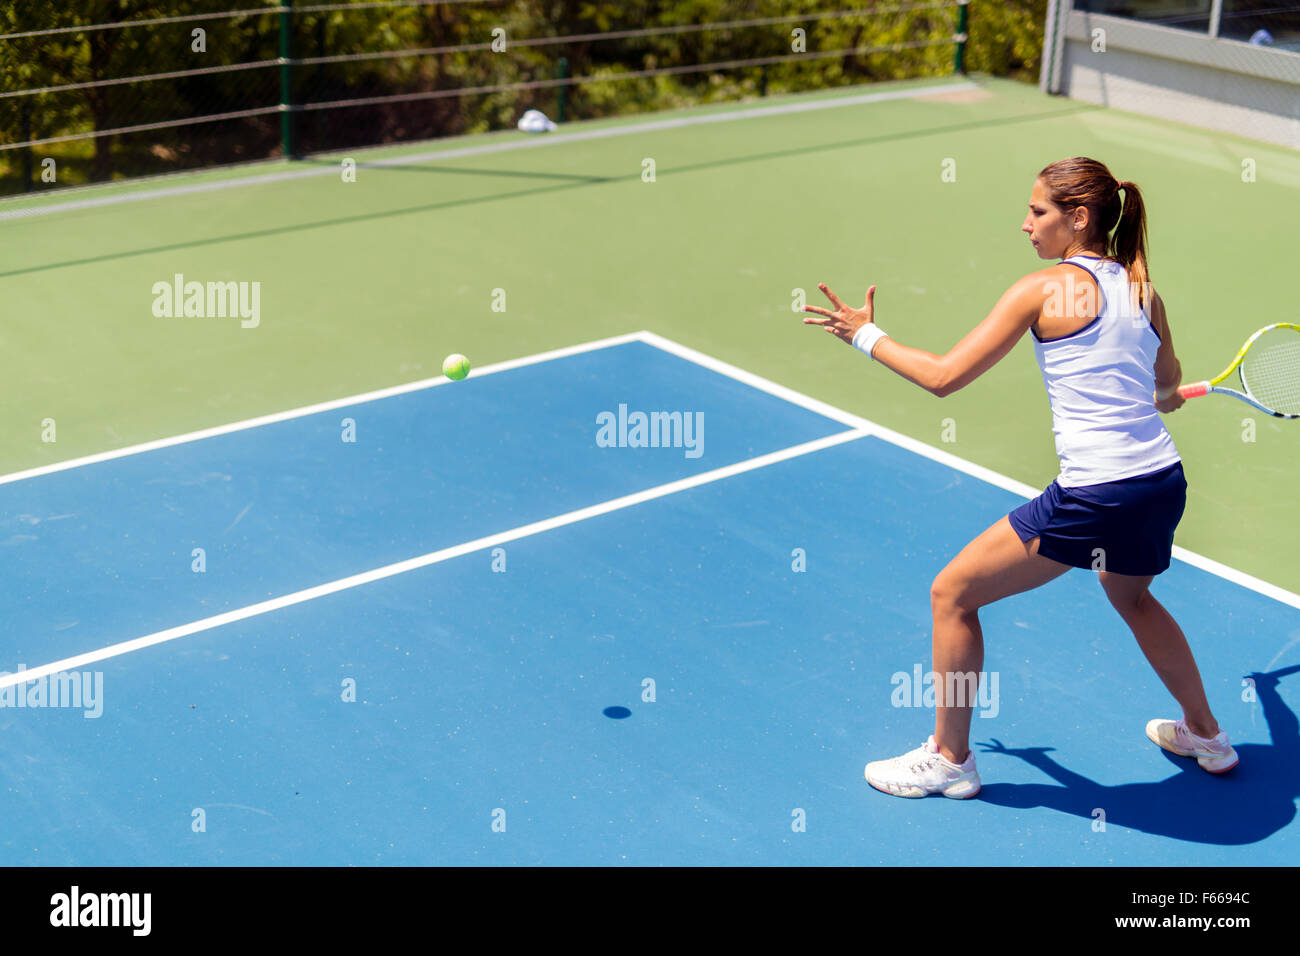 Beautiful female tennis player in action, hitting a forehand - Stock Image